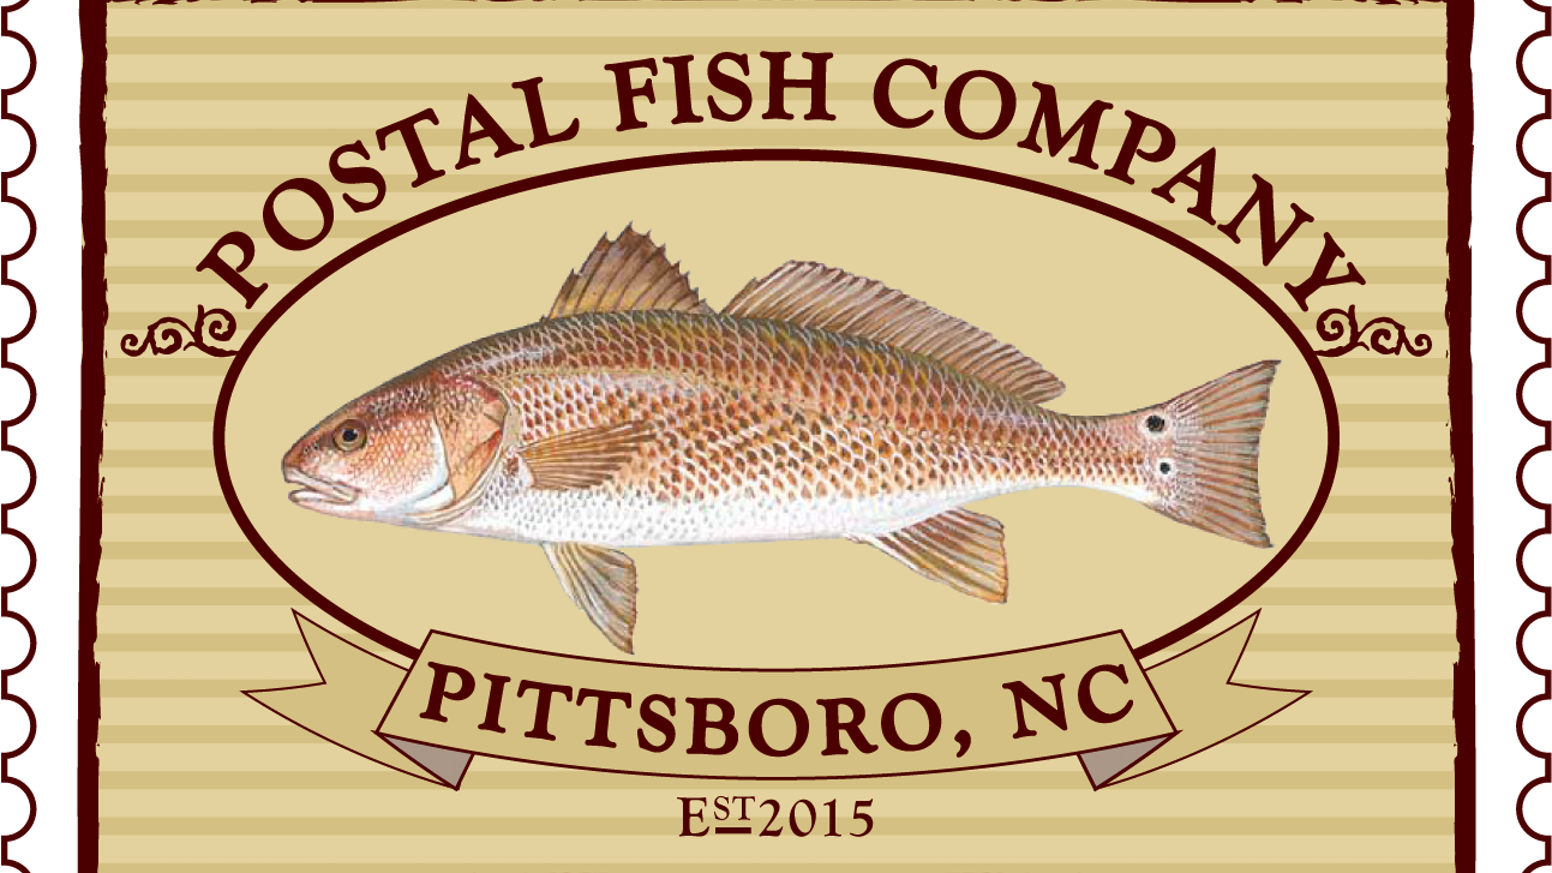 Postal Fish Co. is a Southern Atlantic Fish House concept located in the Piedmont of North Carolina.